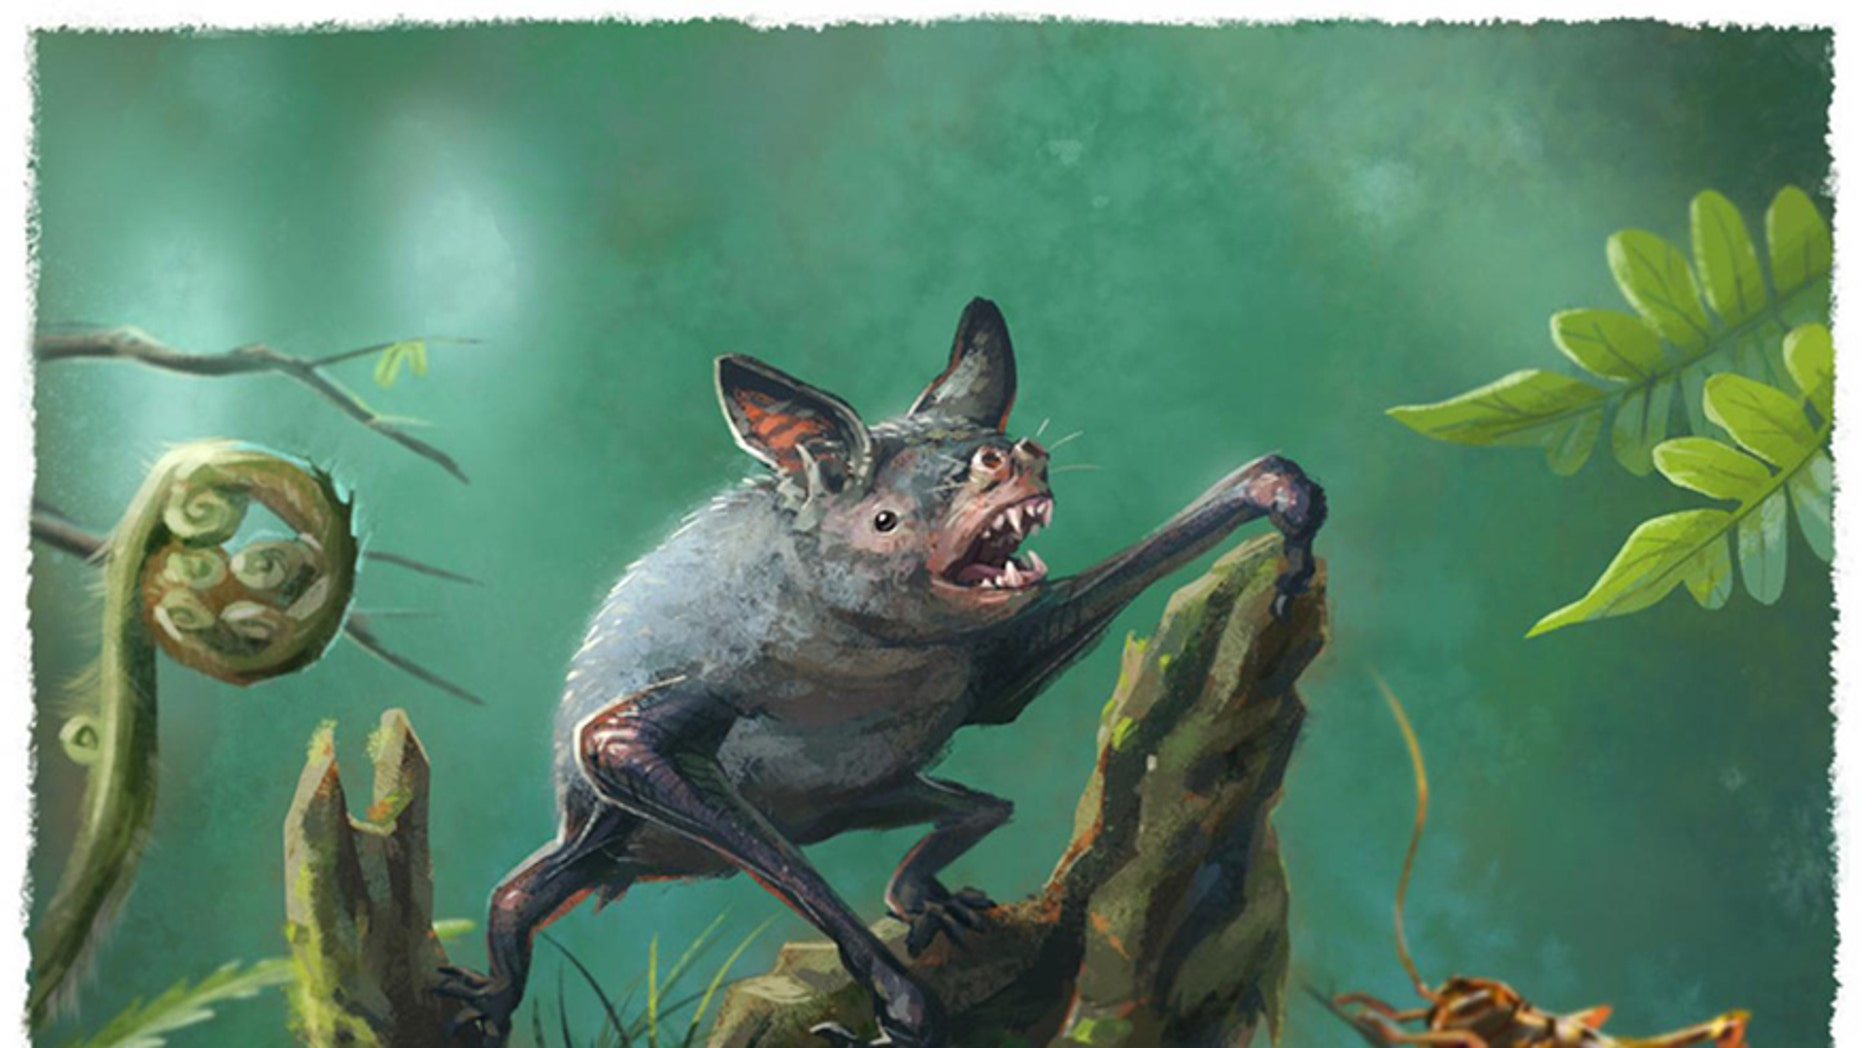 An artist's impression of a New Zealand burrowing bat, Mystacina robusta, that went extinct last century. The new fossil find, Vulcanops jennyworthyae, that lived millions of years ago in New Zealand, is an ancient relative of burrowing or short-tailed bats.  (CREDIT: Illustration by Gavin Mouldey.)